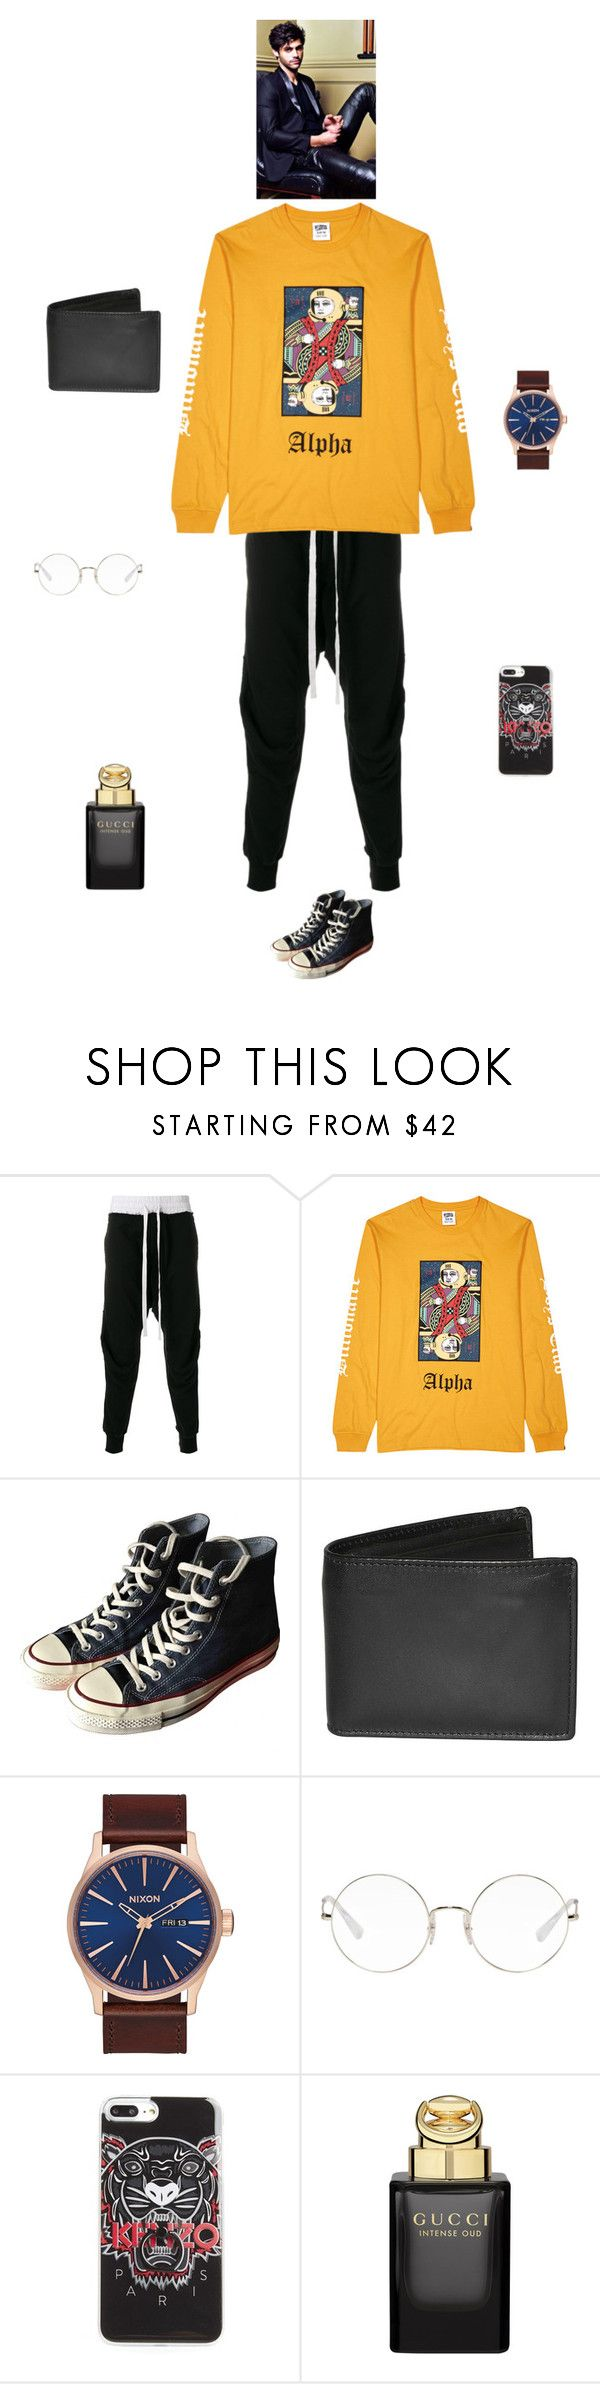 """K"" by queen-kaitlyn ❤ liked on Polyvore featuring Haider Ackermann, Billionaire Boys Club, Converse, Dopp, Nixon, Ray-Ban, Kenzo and Gucci"